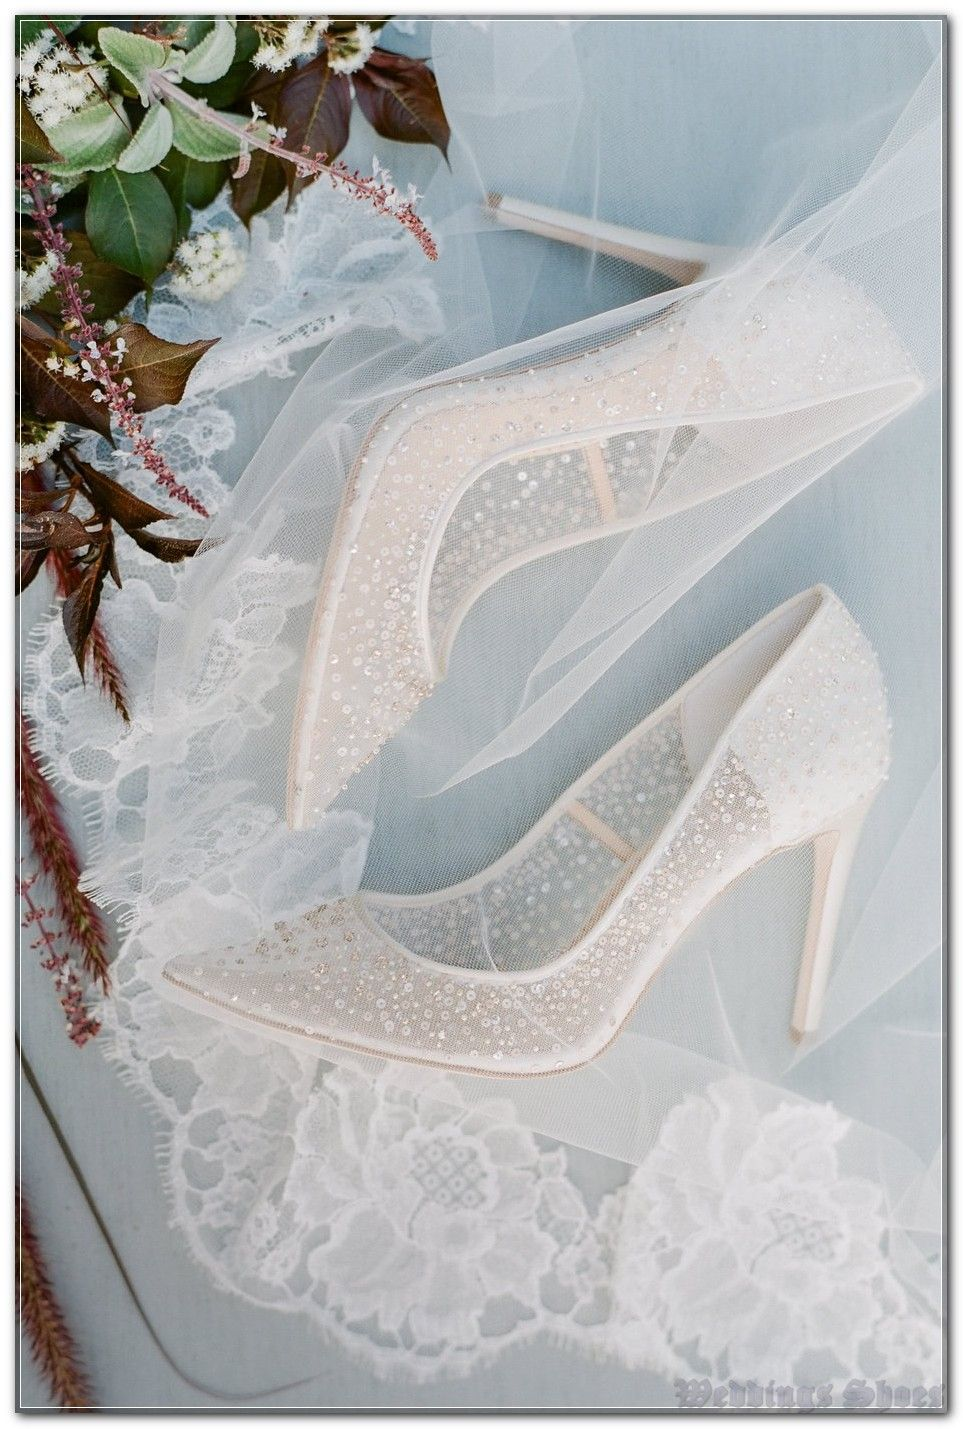 Savvy|Smart|Besty People Do Wedding Shoes :)